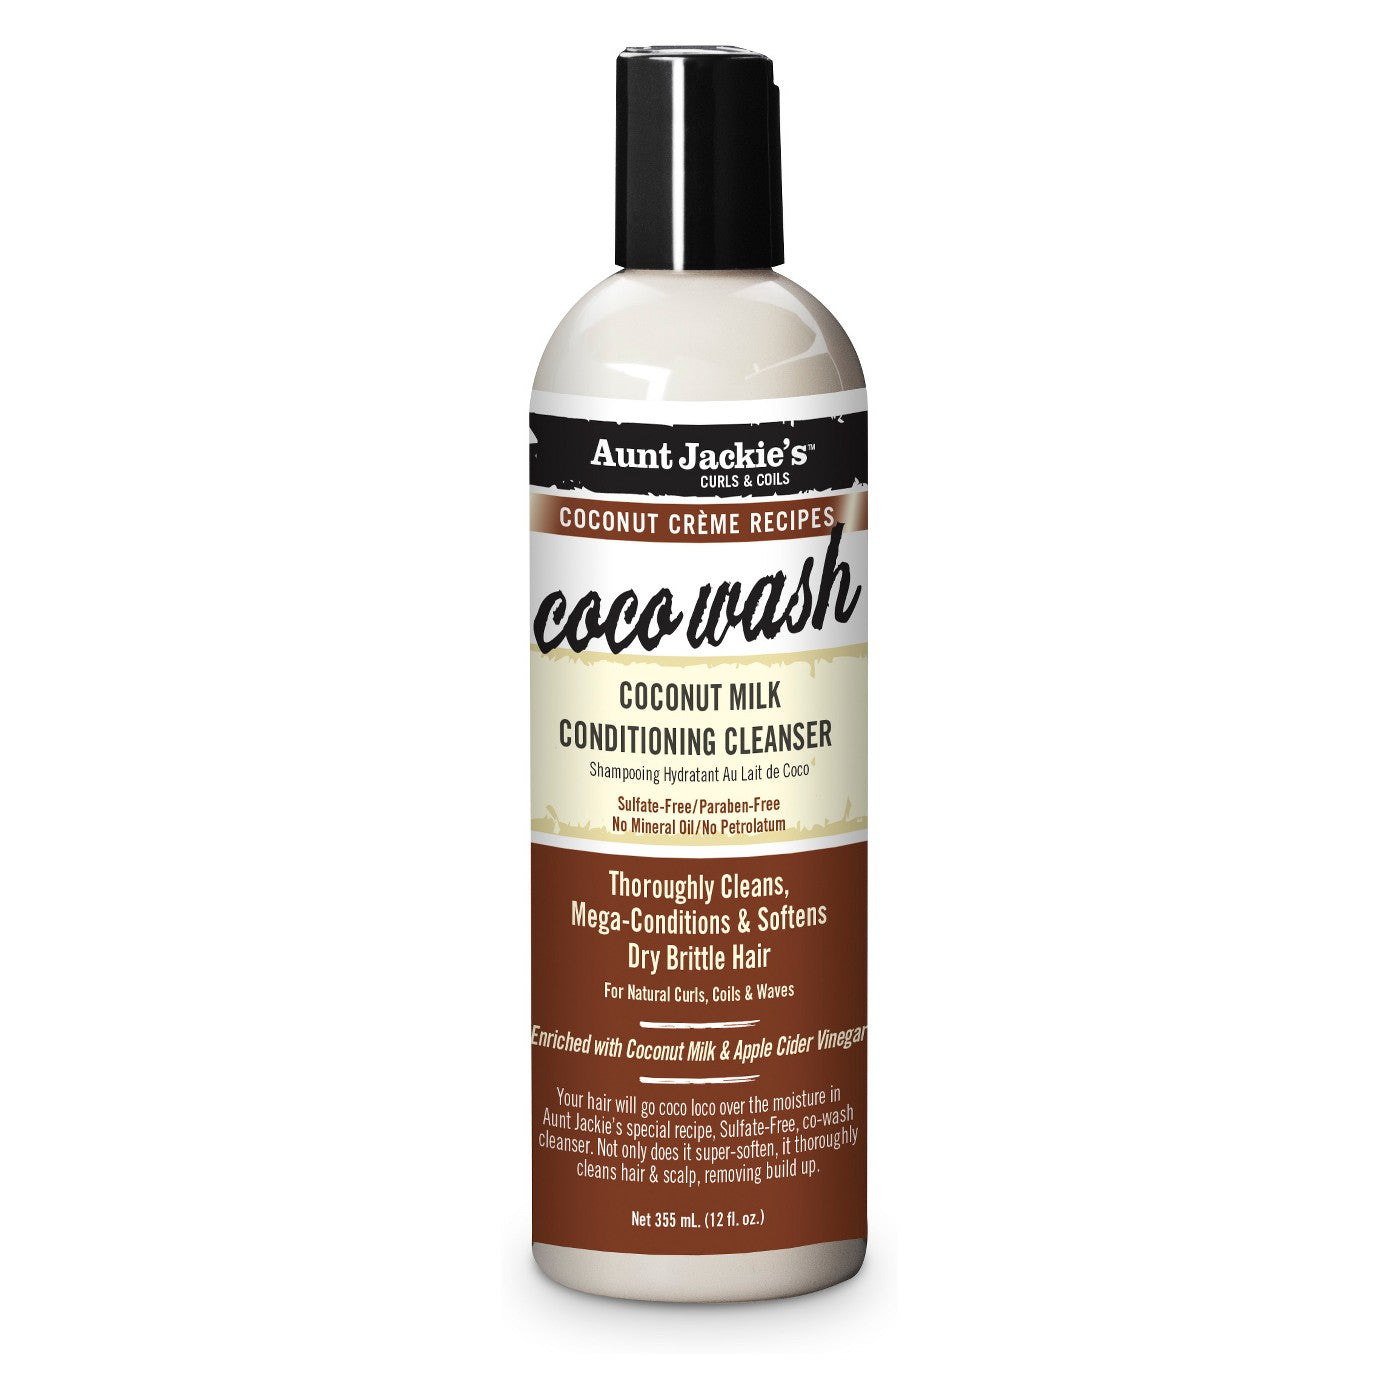 Aunt Jackie's Coconut MILK CONDITIONING CLEANSER 12 Oz - All Products - Express Beauty USA